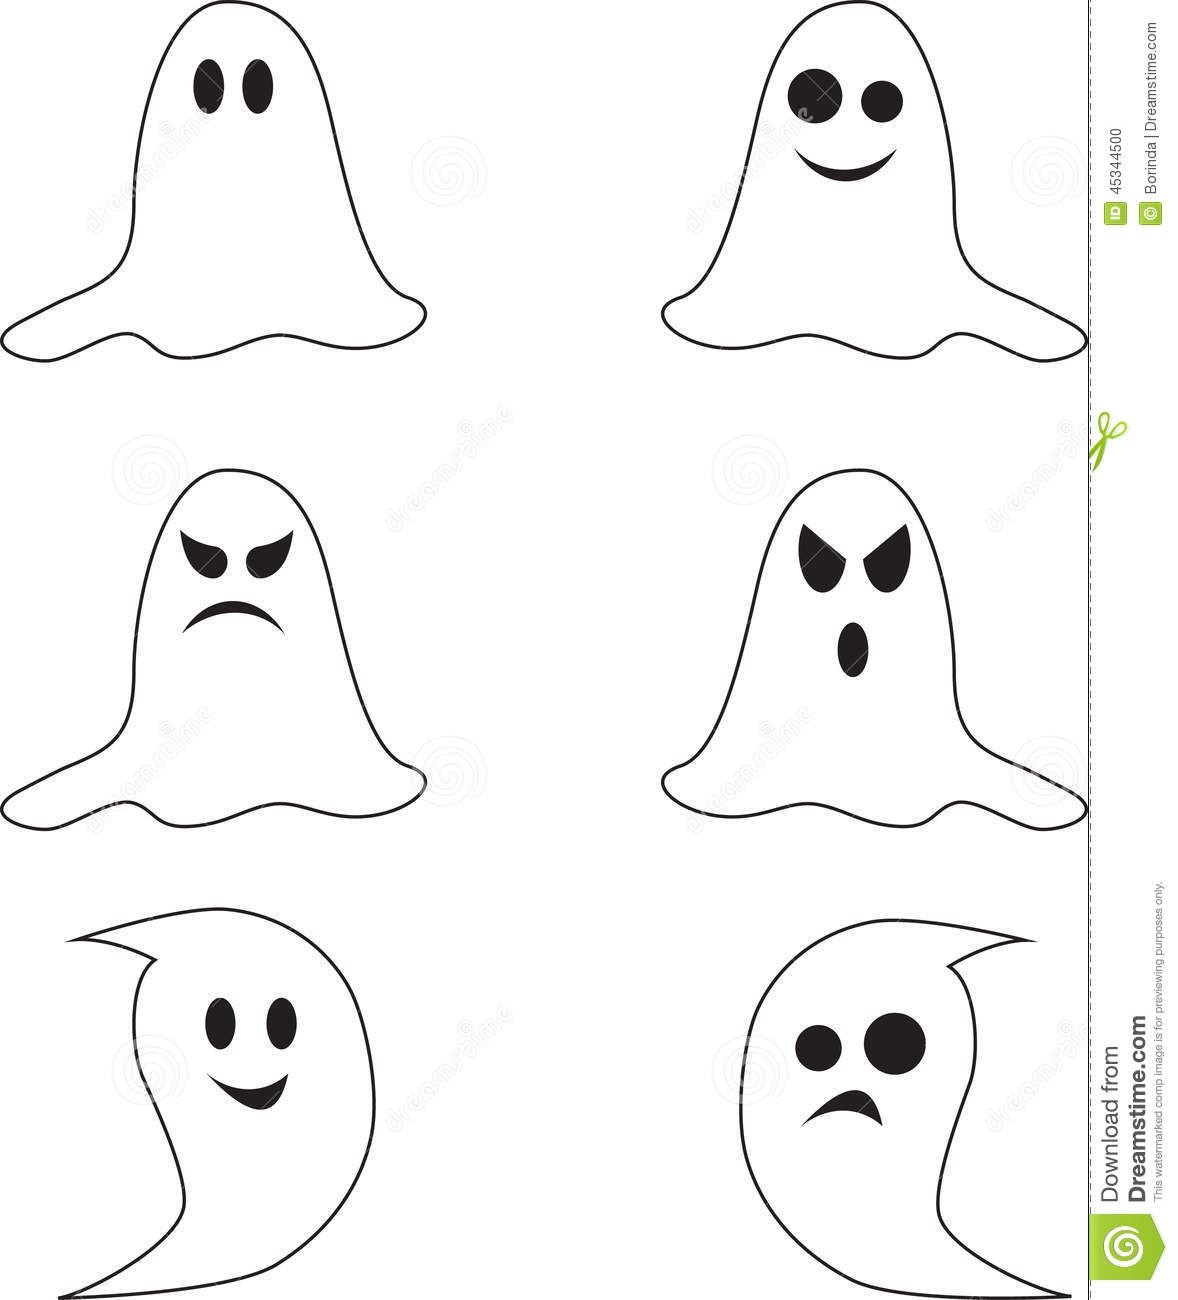 Spooky Black And White Ghost Illustrations Stock